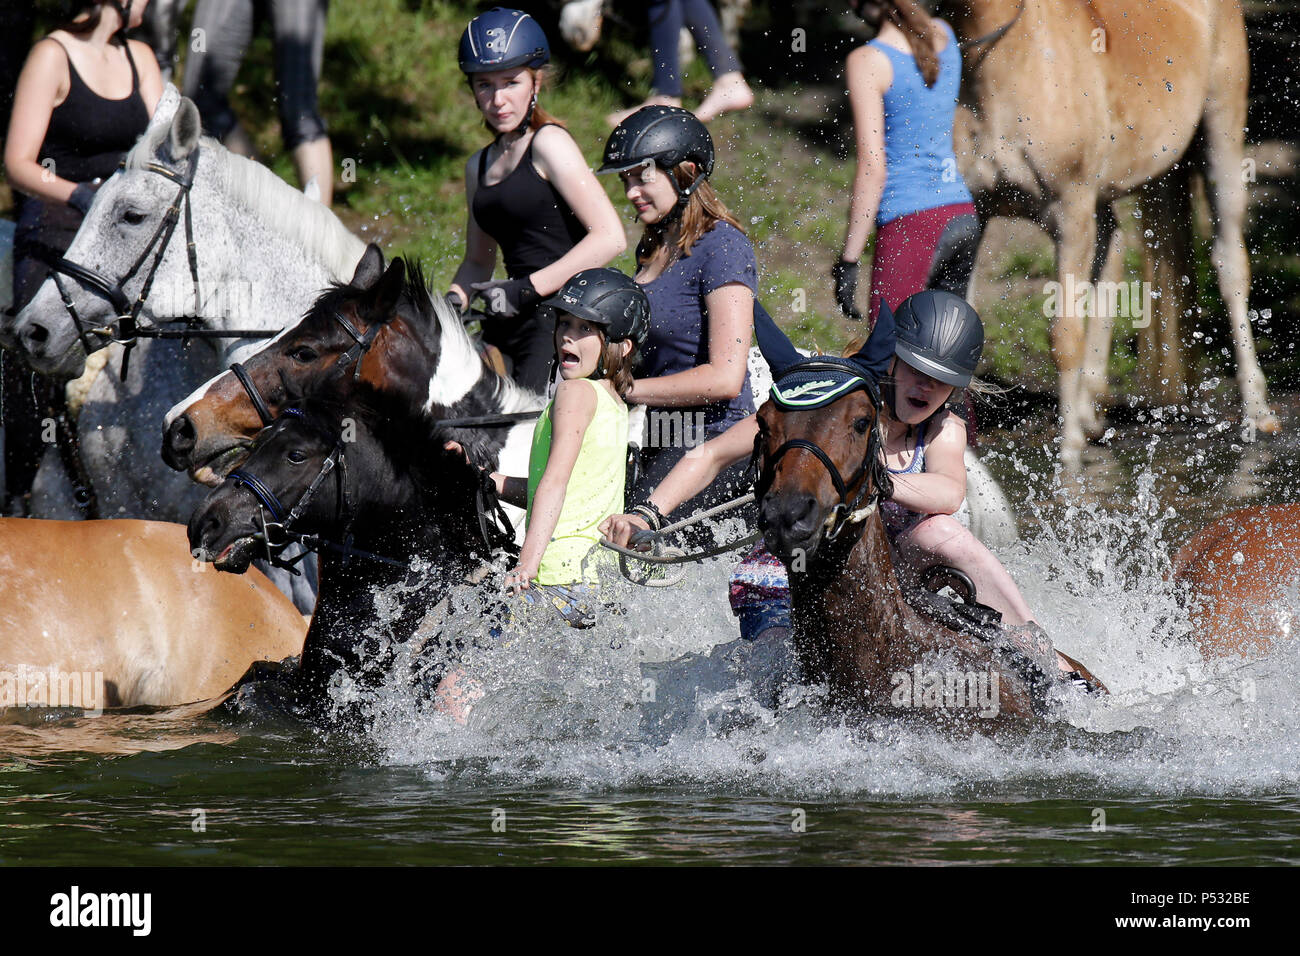 Oberoderwitz, Saxony, Germany - Girls jump from their horses into a lake, the horse has much more fun swimming like the rider - Stock Image